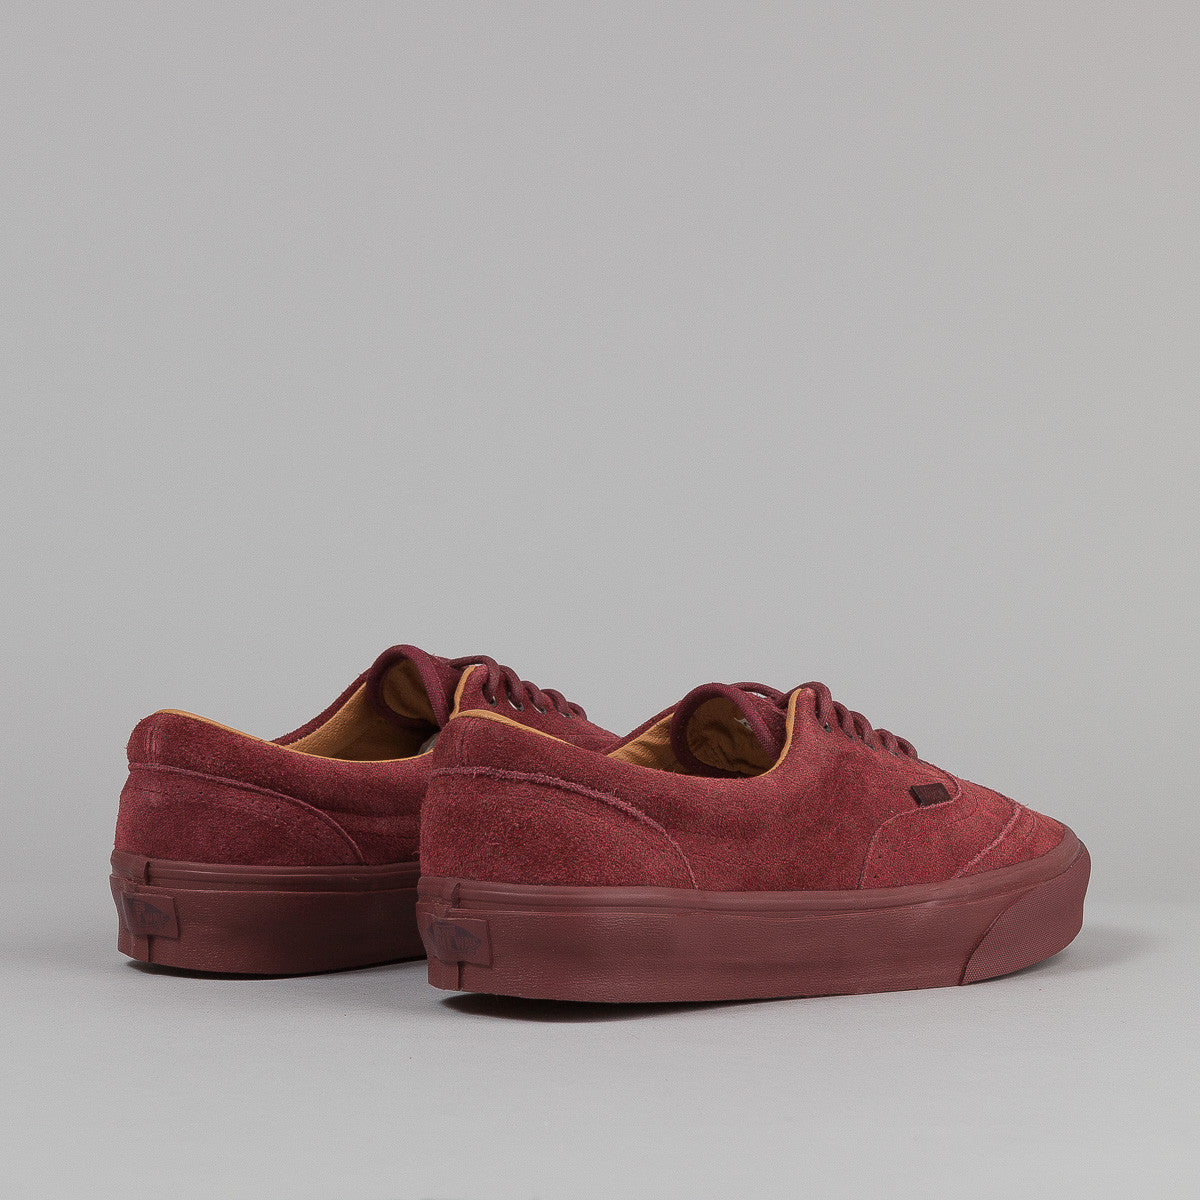 Vans Era Wingtip CA Shoes - (Suede) Madder Brown